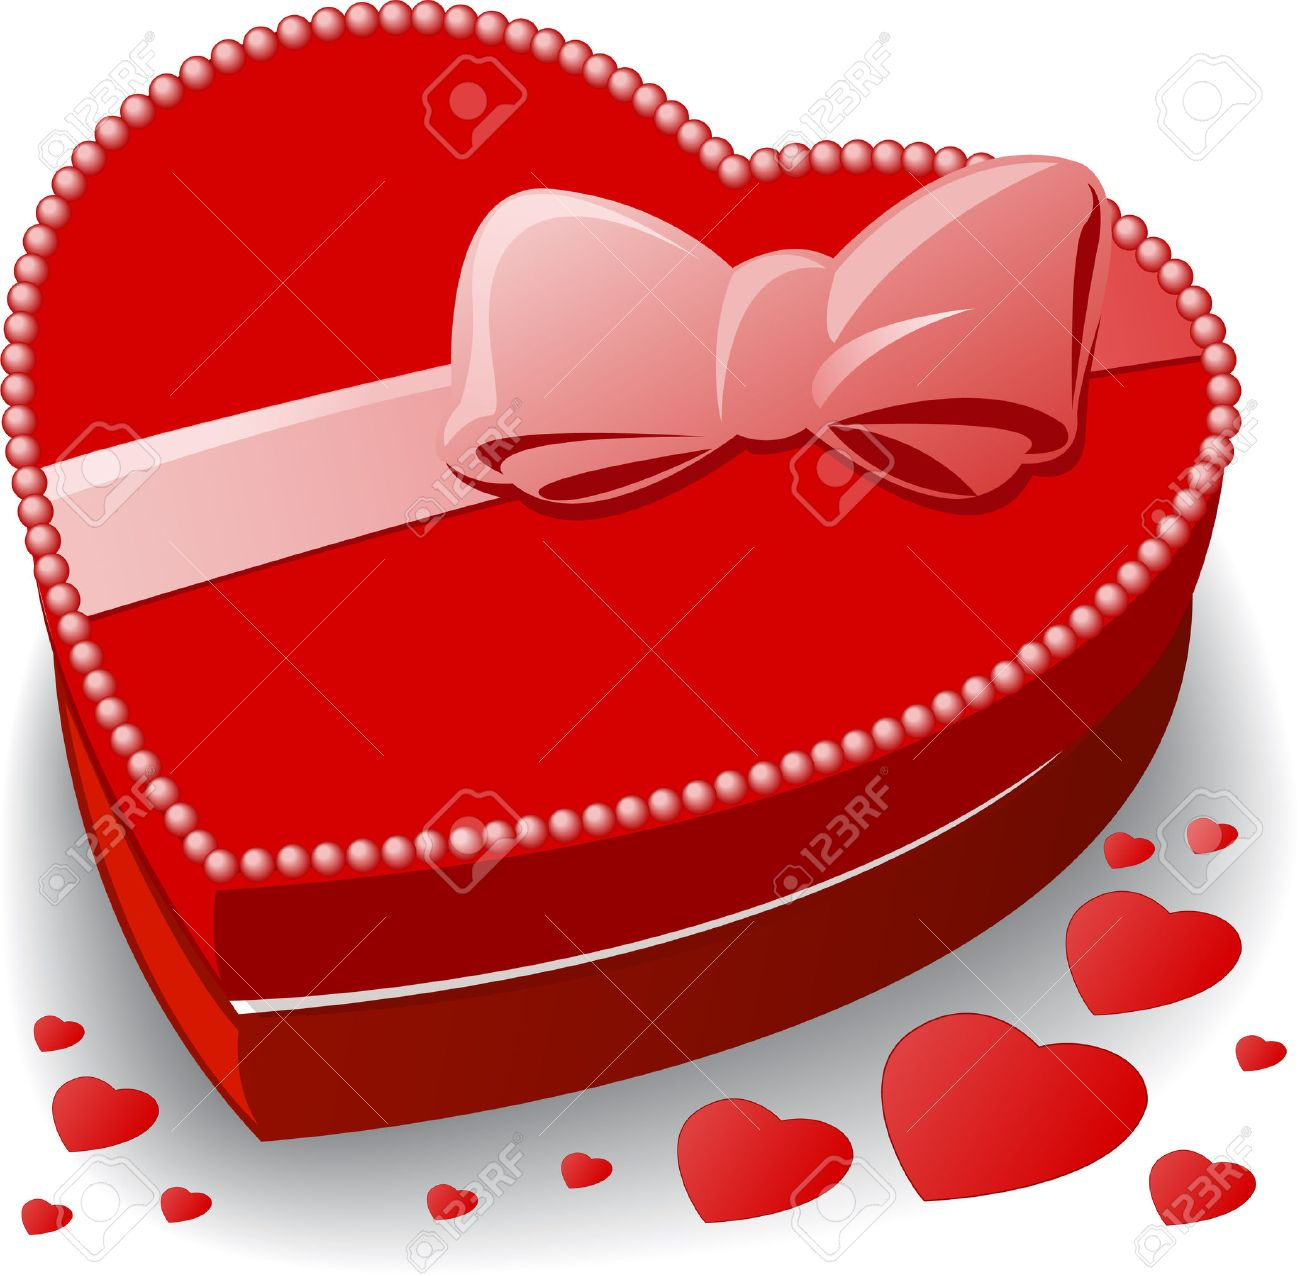 red heart-shaped box decorated with a bow Stock Vector - 8142577